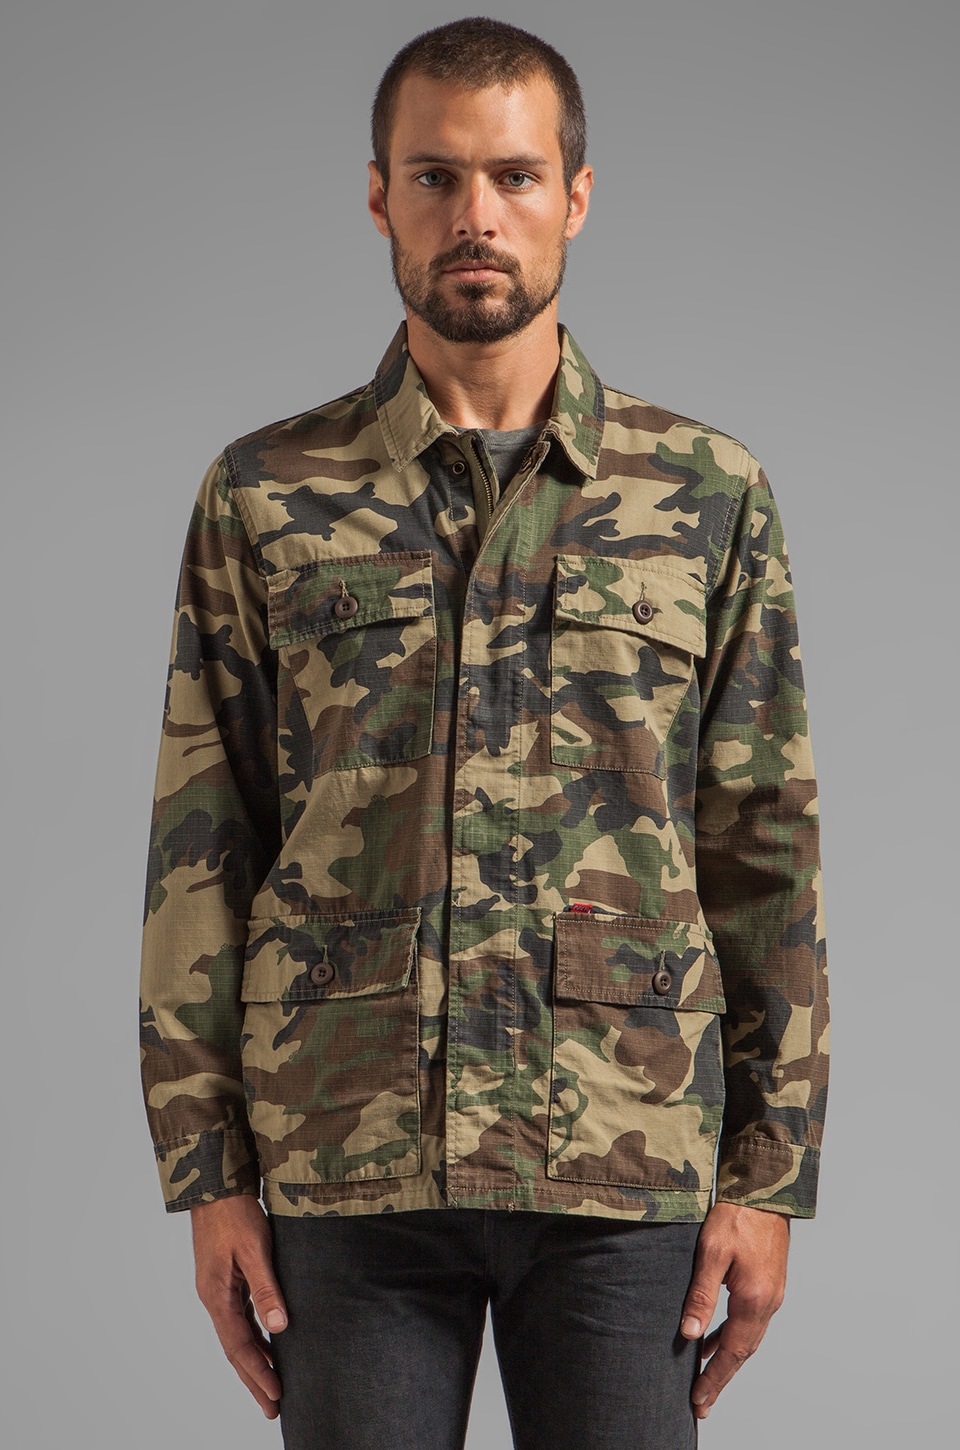 Obey Dissent BDU Inspired Jacket in Field Camo